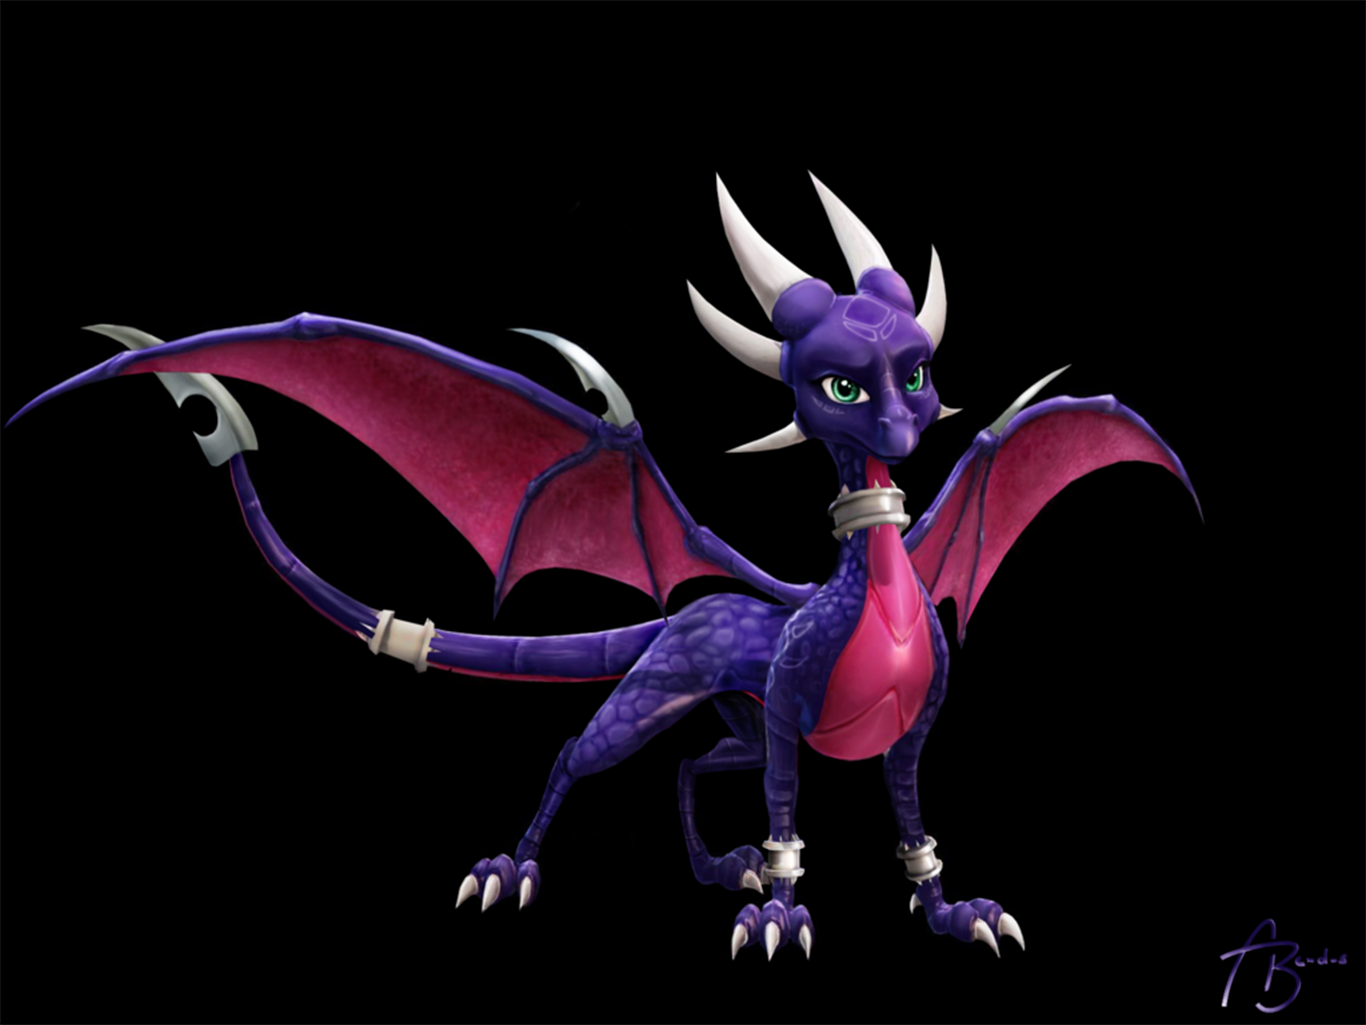 Cynder wallpaper and background image 1366x1025 id - Spyro wallpaper ...